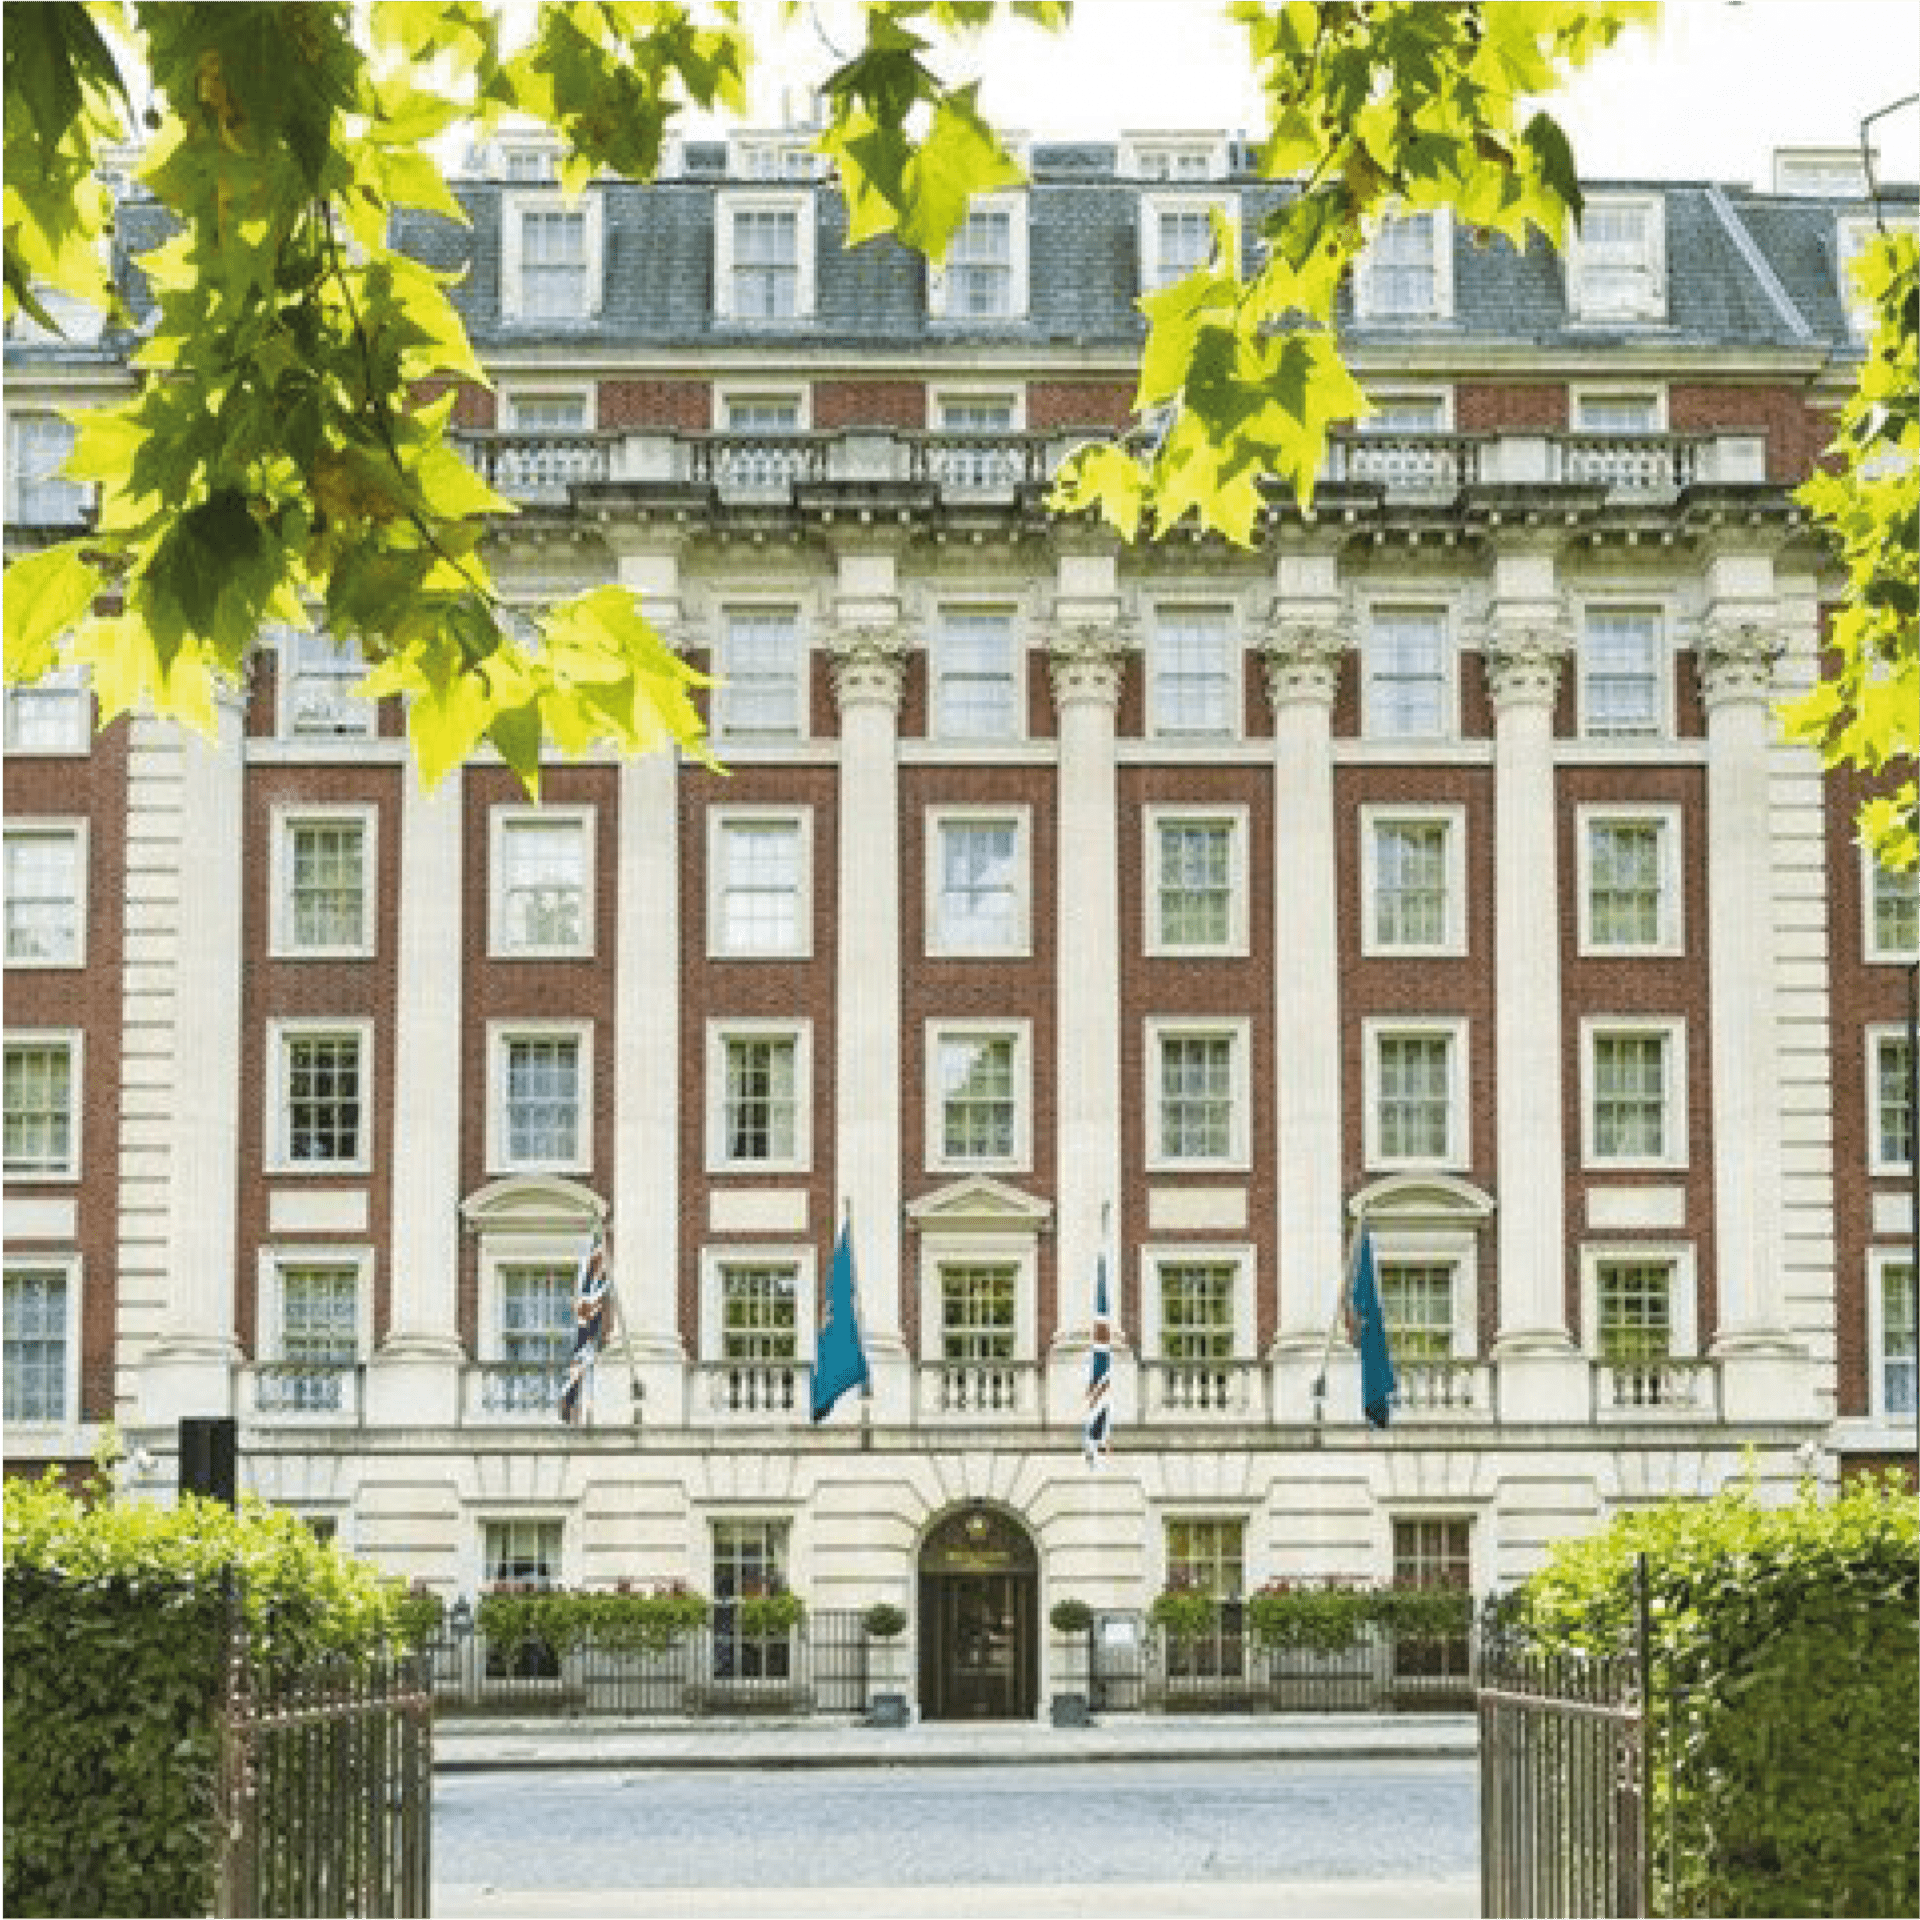 millennium hotel in mayfair, imist installed a fire suppression system, hotels and hostels case study